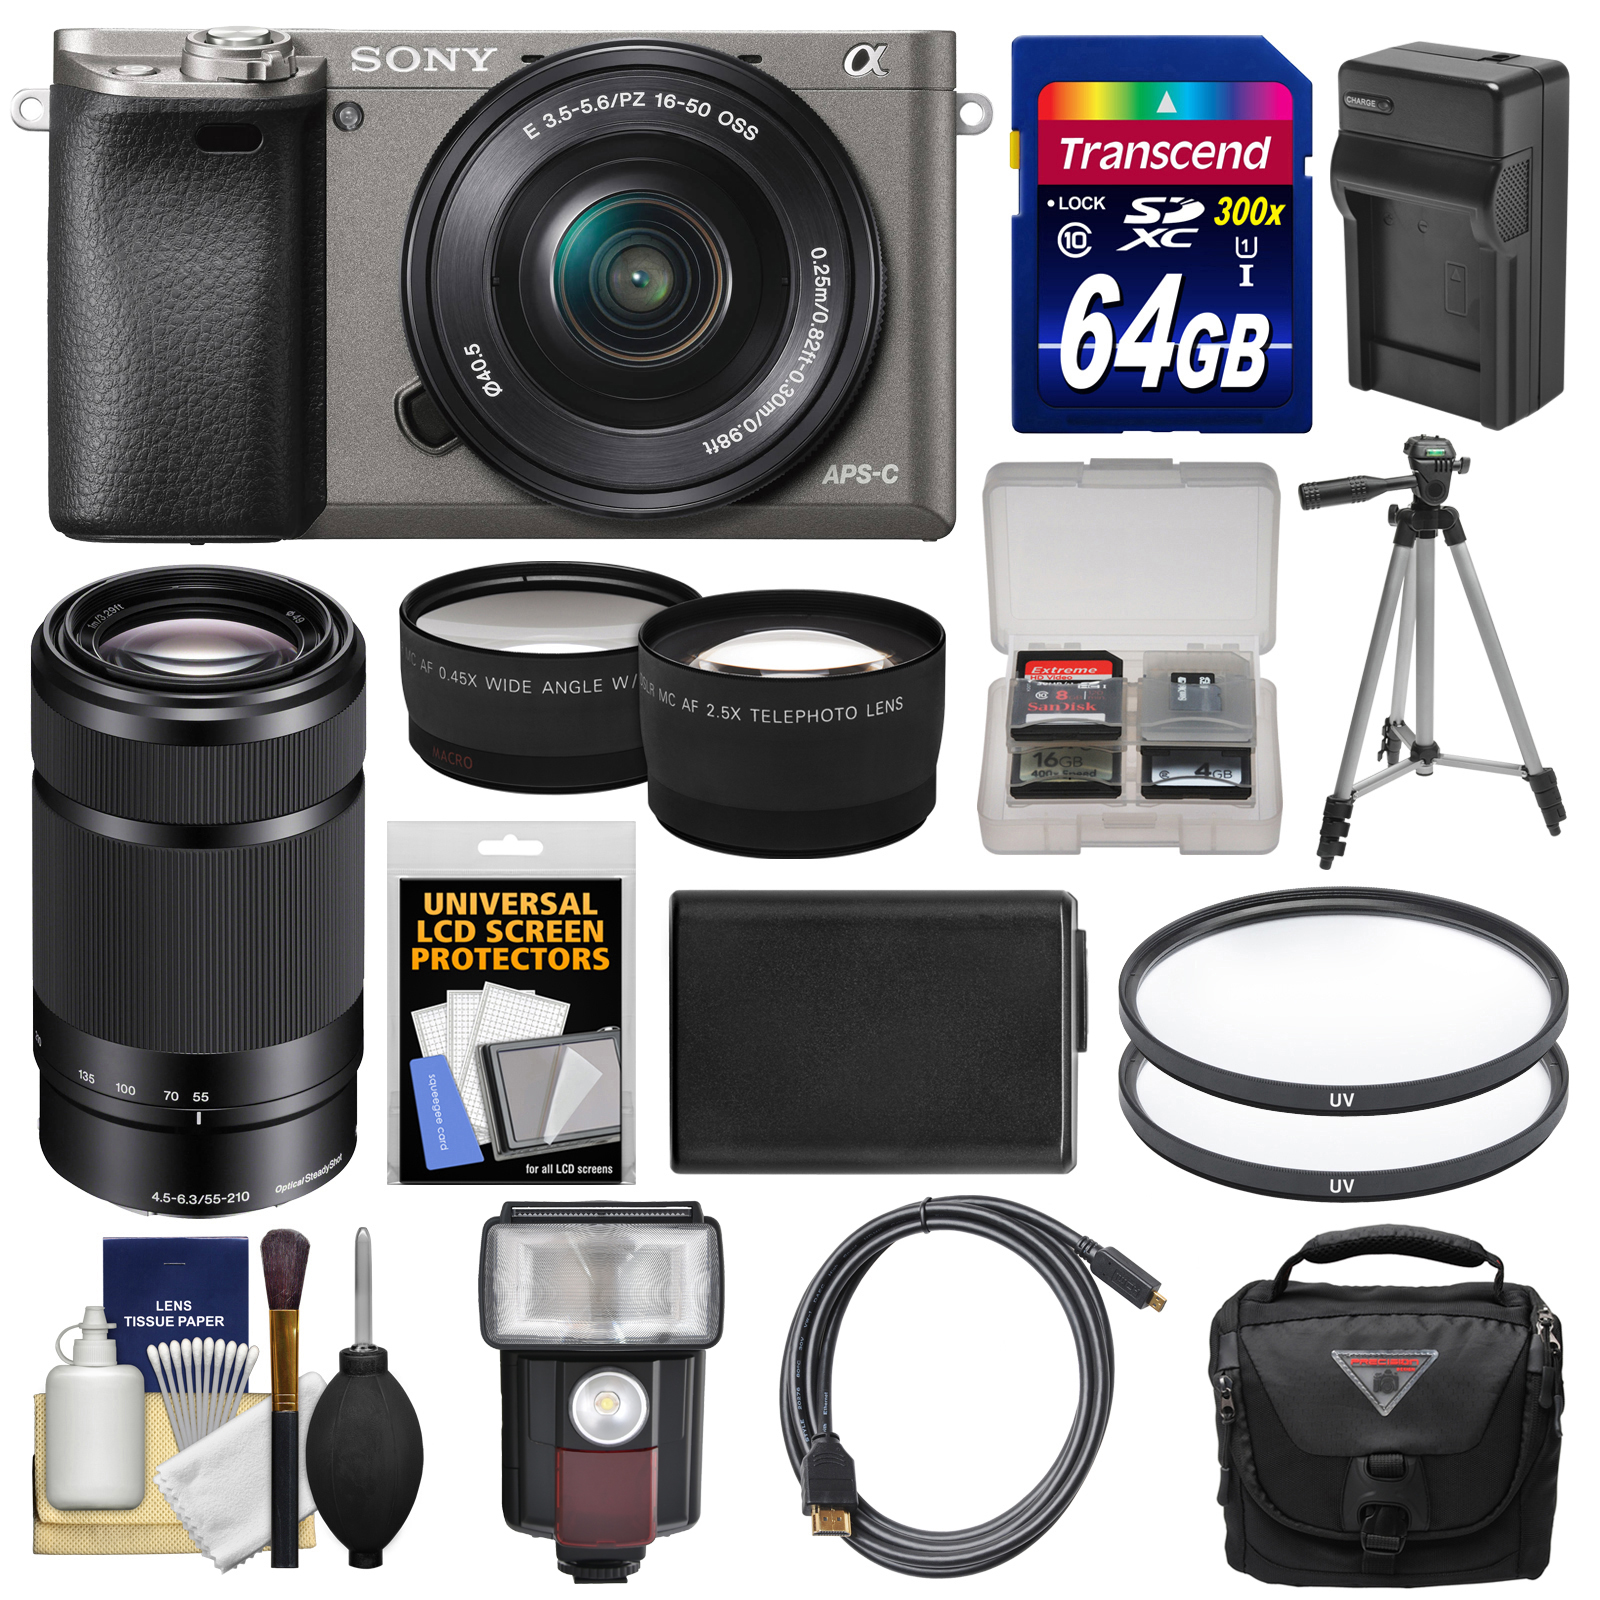 Sony Alpha A6000 Wi-Fi Digital Camera & 16-50mm Lens (Graphite) with 55-210mm Lens + 64GB Card + Case + Flash + Battery/Charger + Tripod Kit